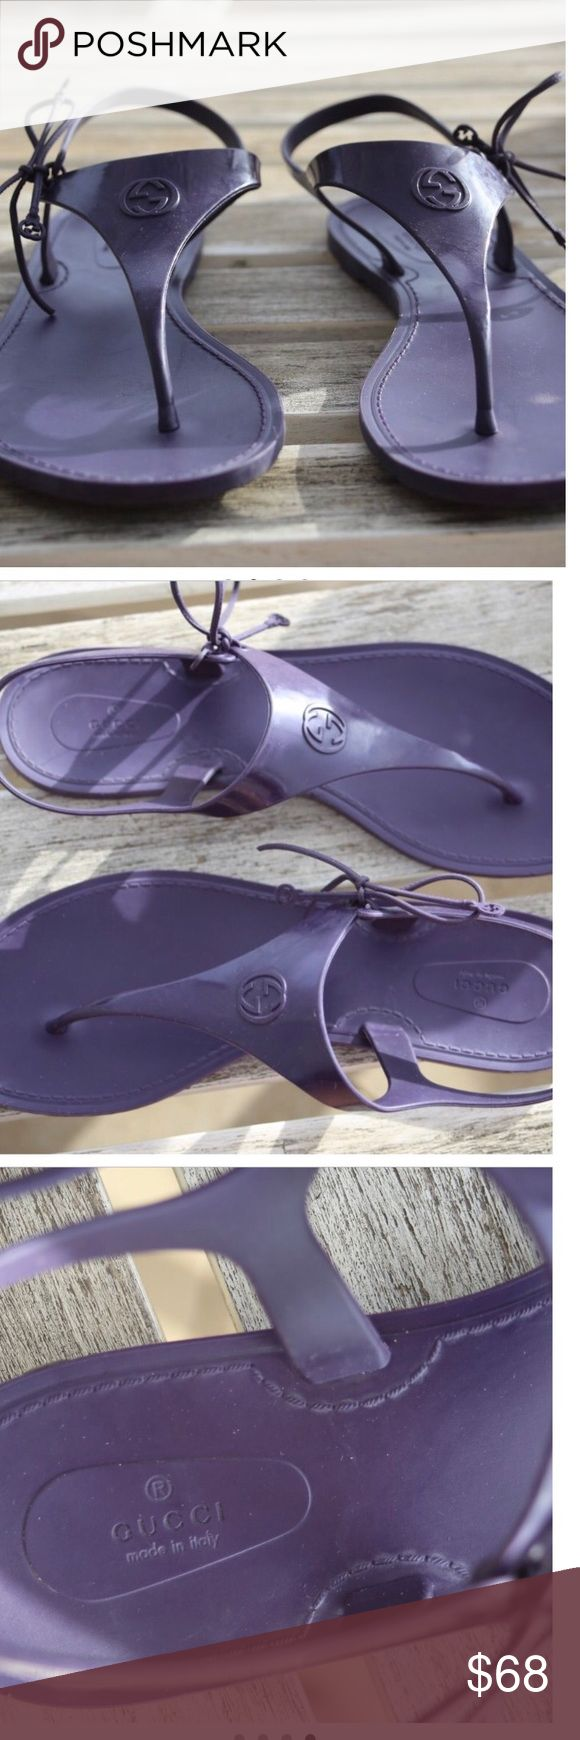 Women's jelly sandals size 10 - Gucci Women S Jelly Sandals 7 5